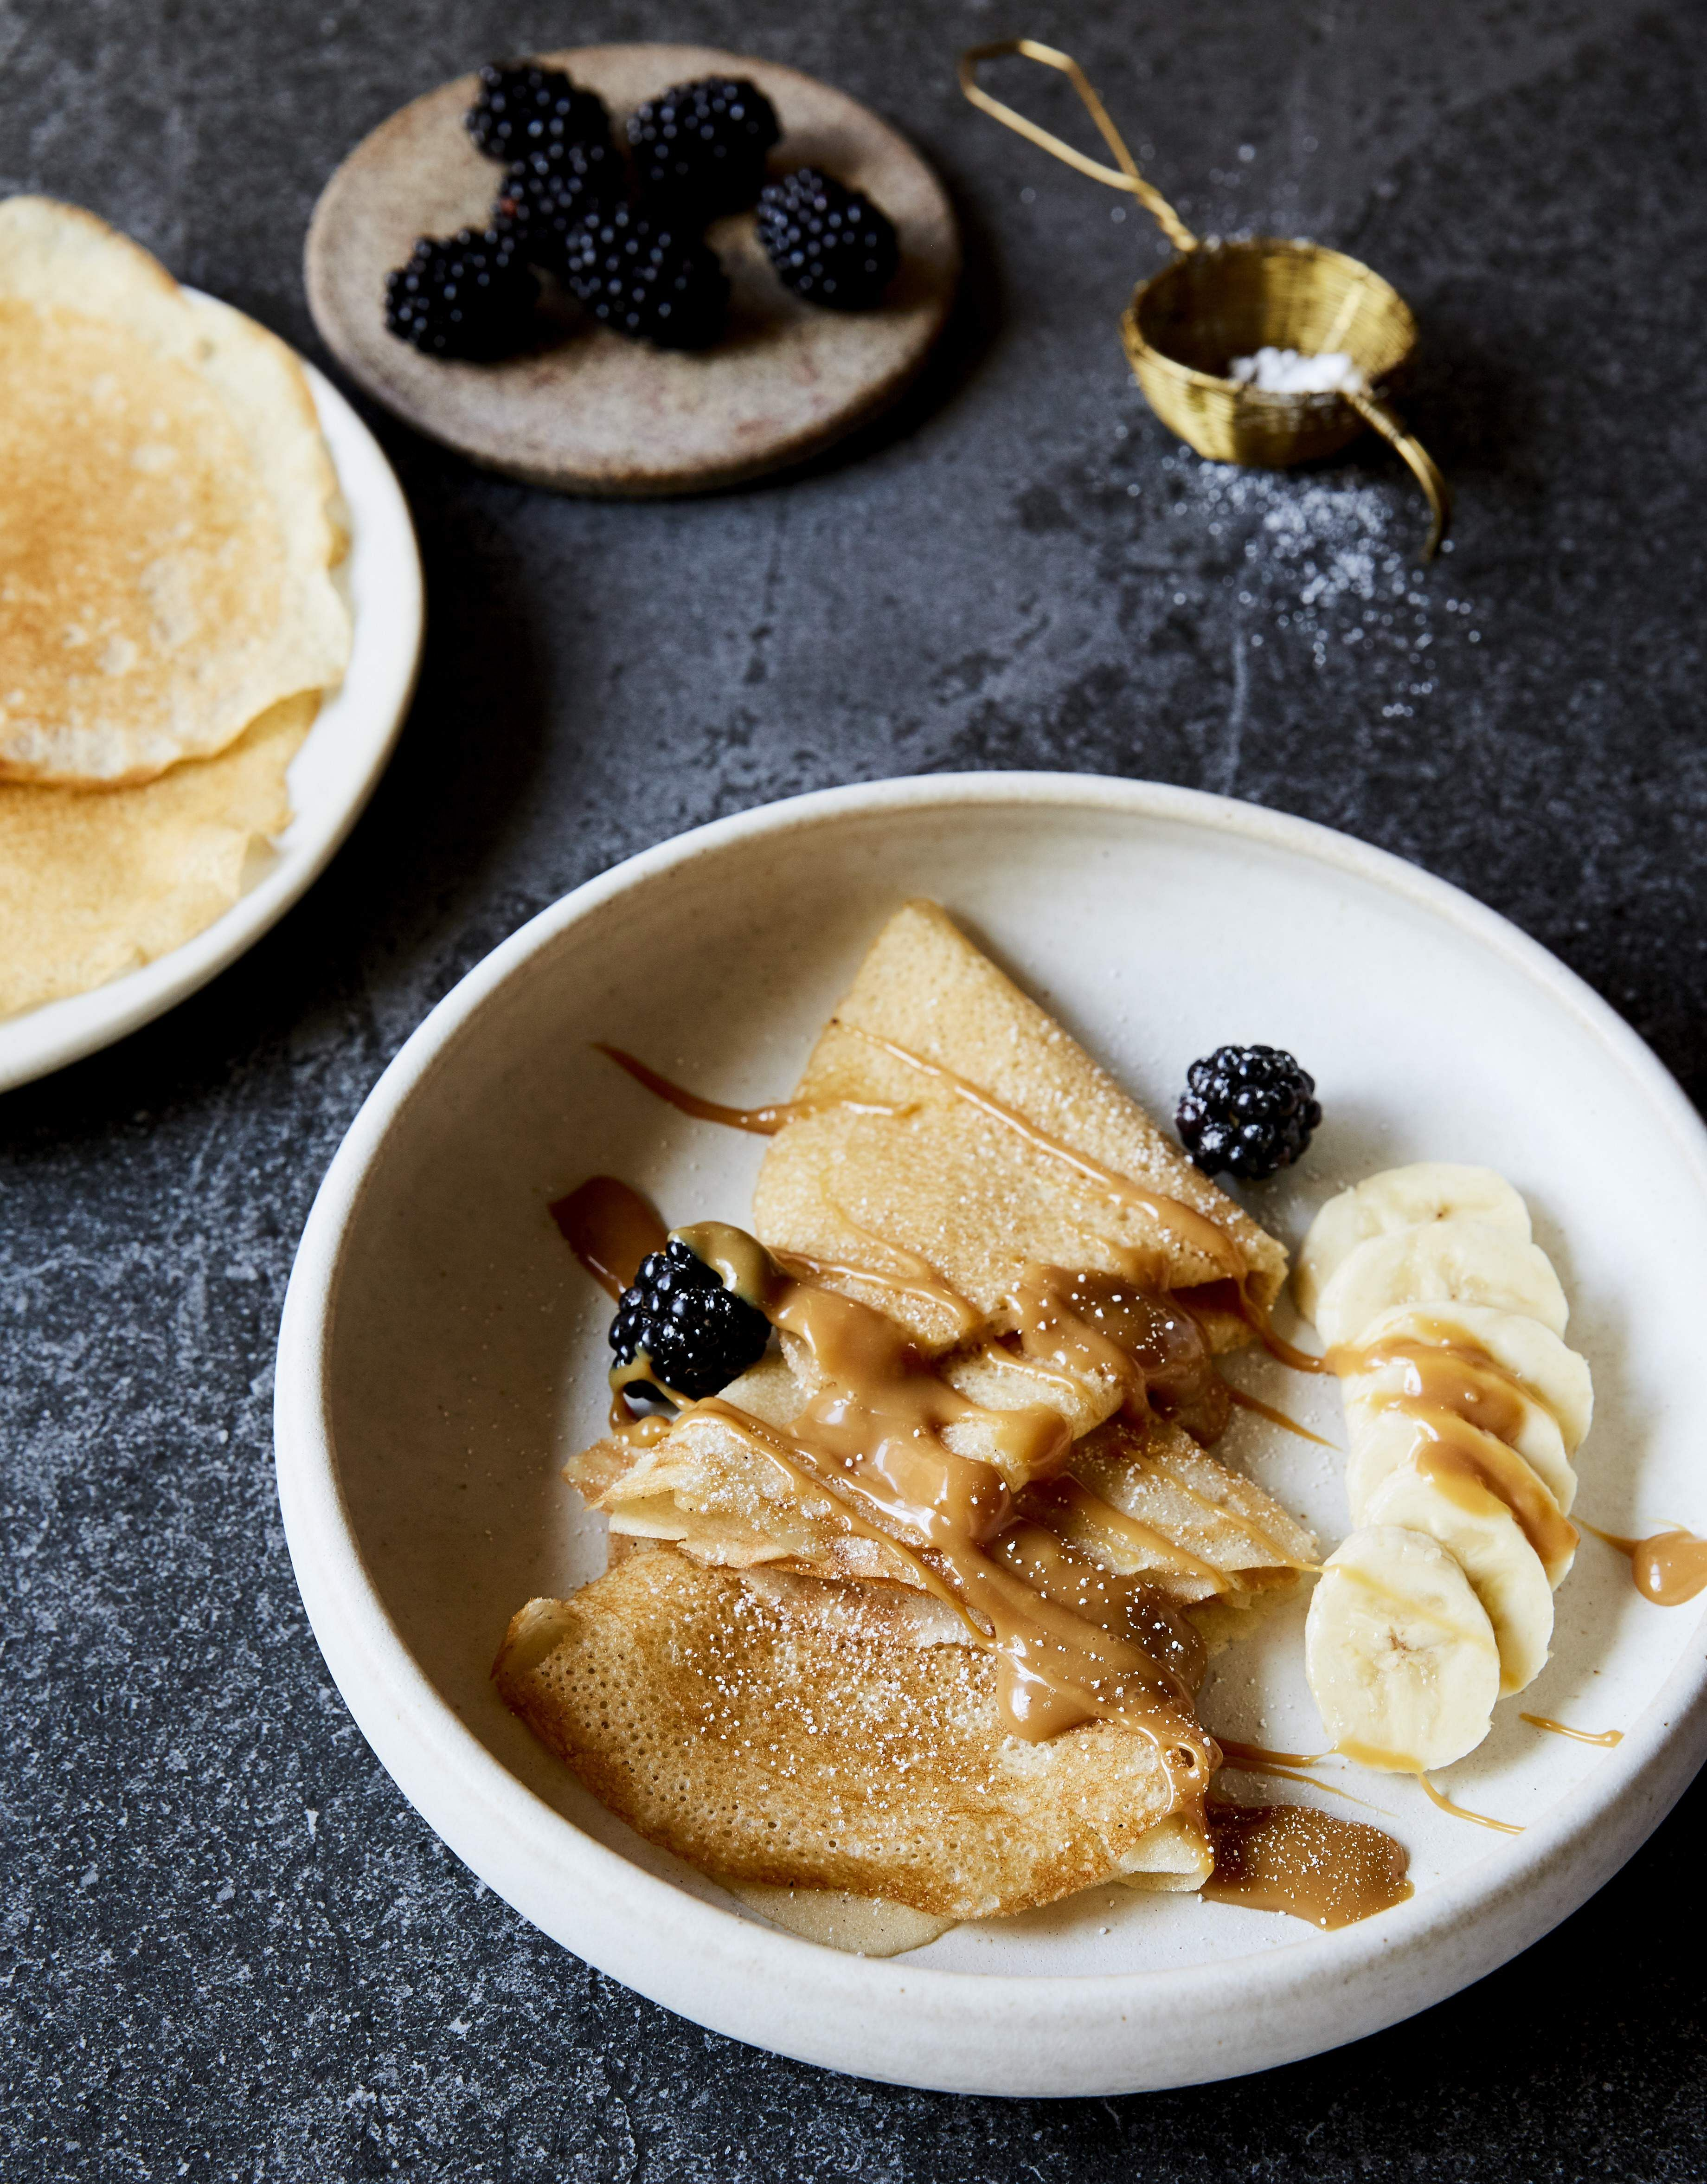 Coconut Crepes by Sarah Todd